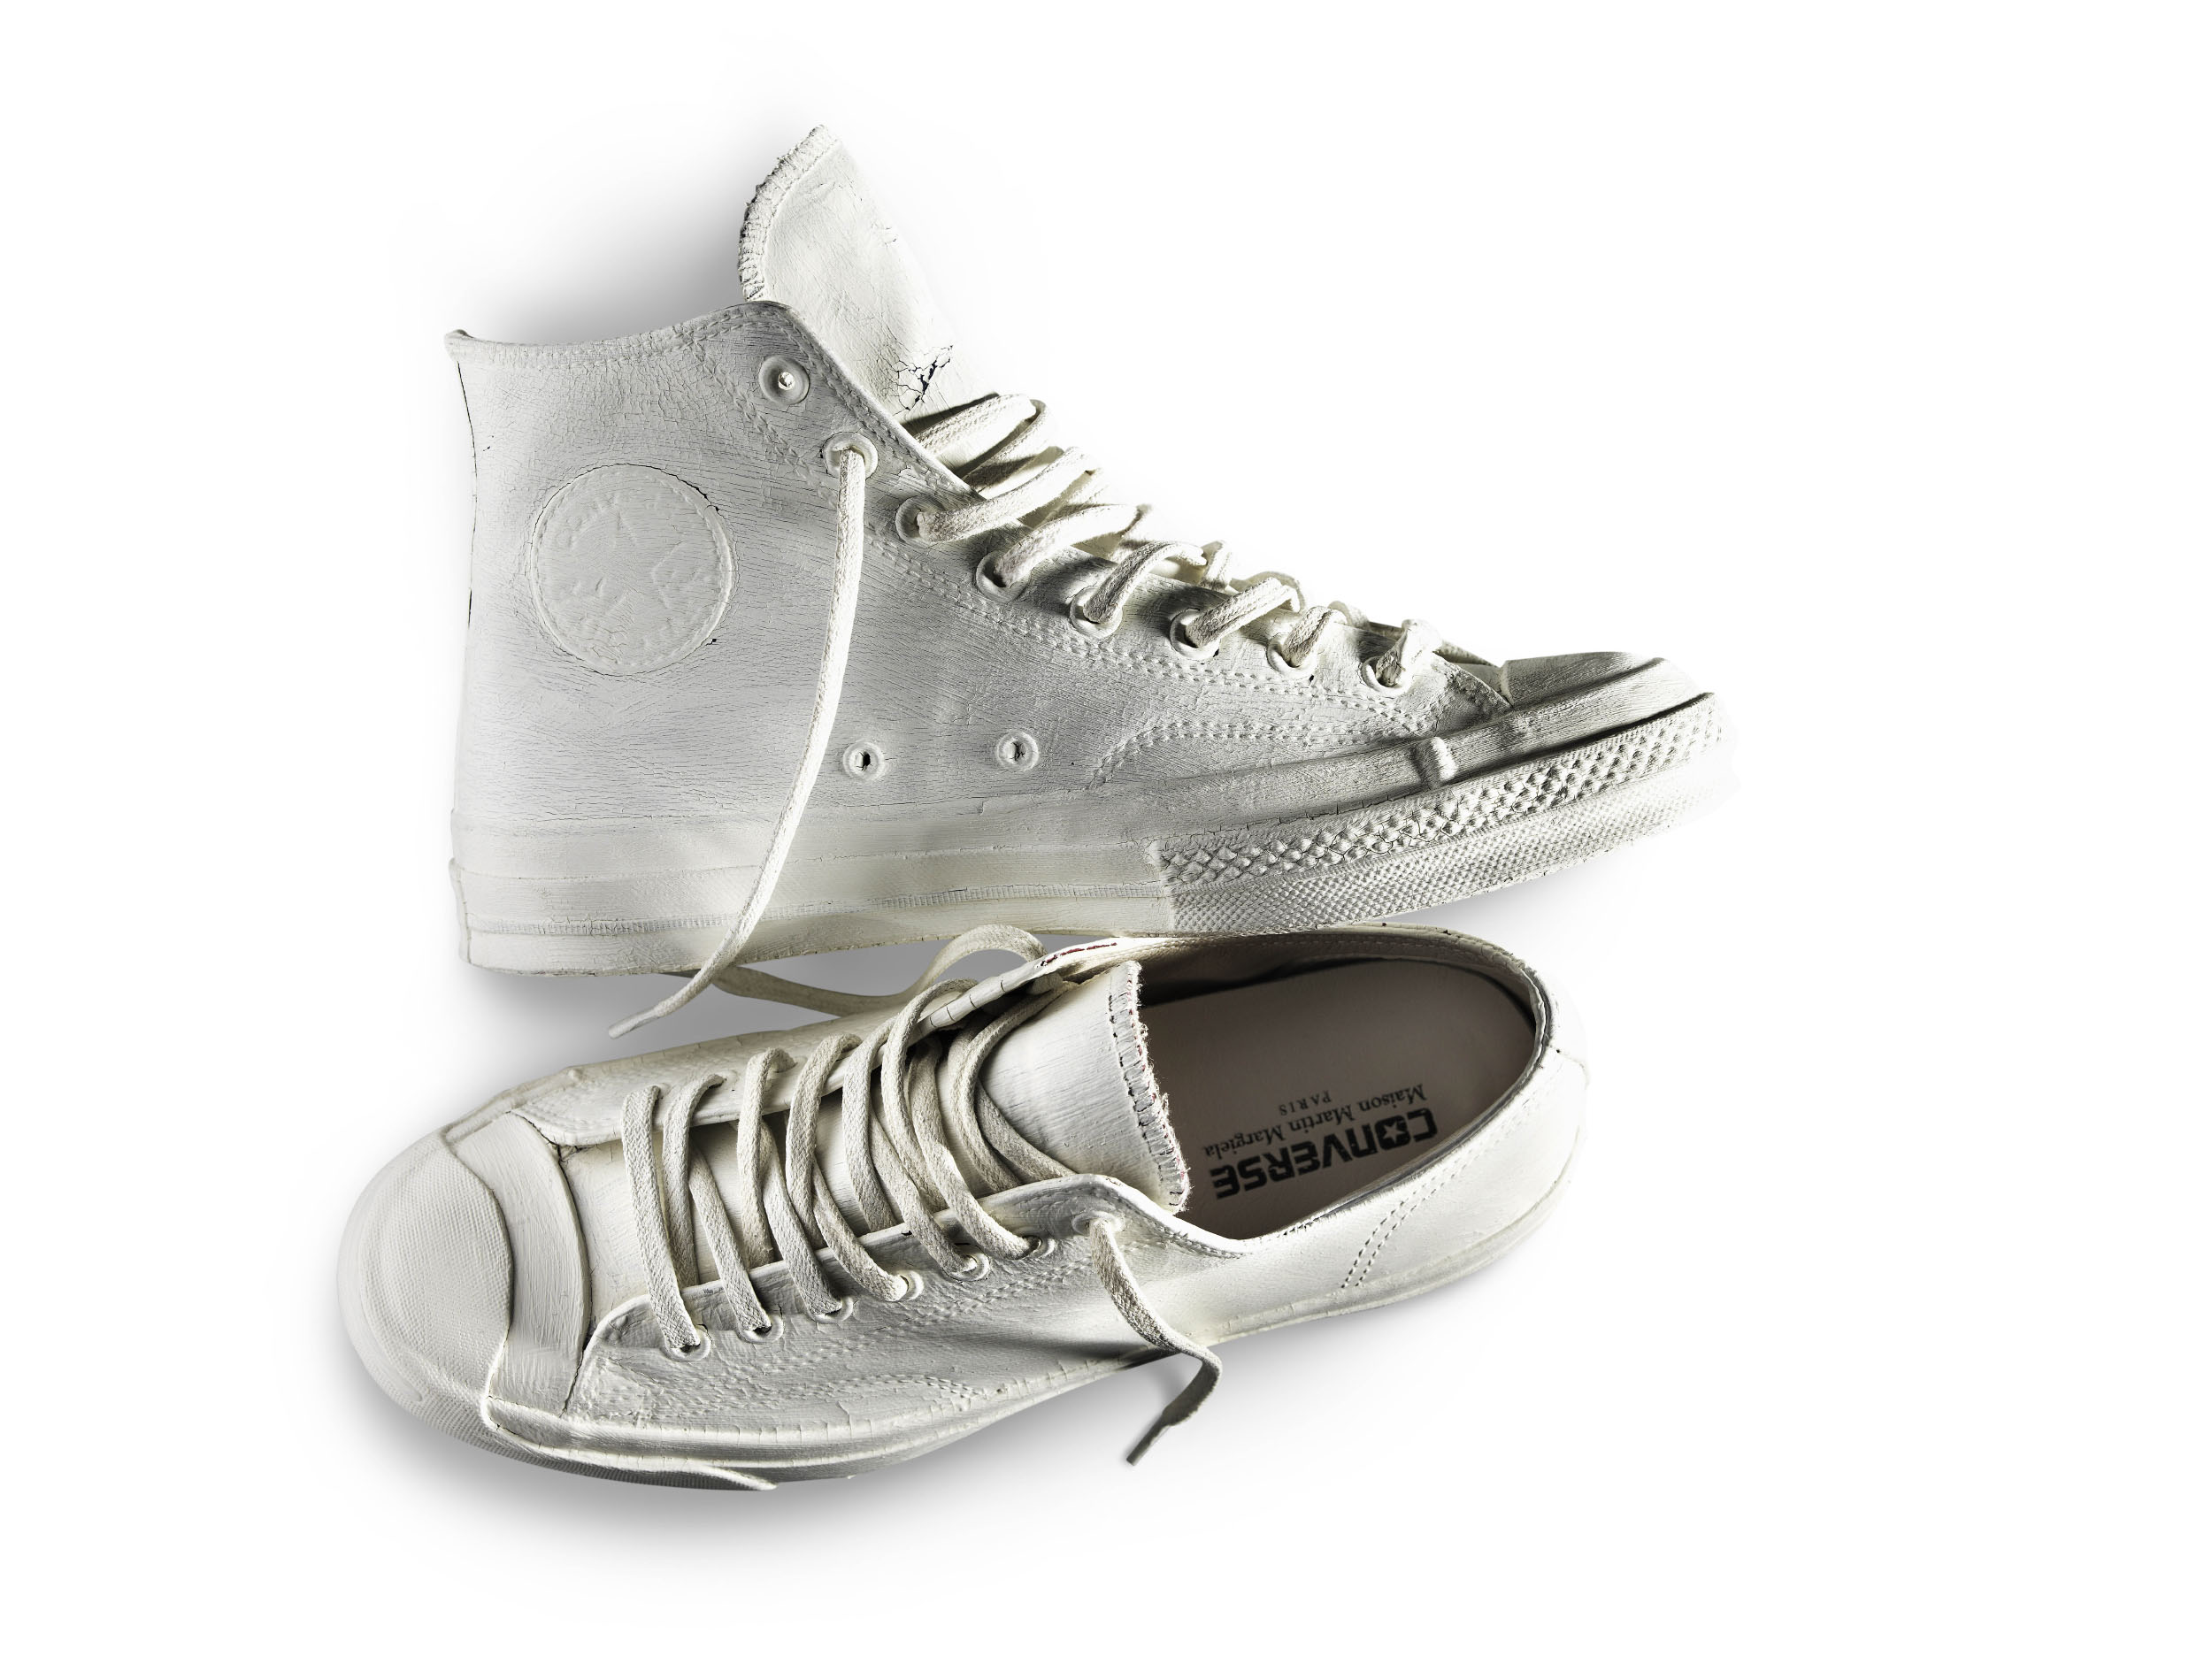 Converse_Maison_Martin_Margiela_All_Star_Chuck_70_Jack_Purcell_29817